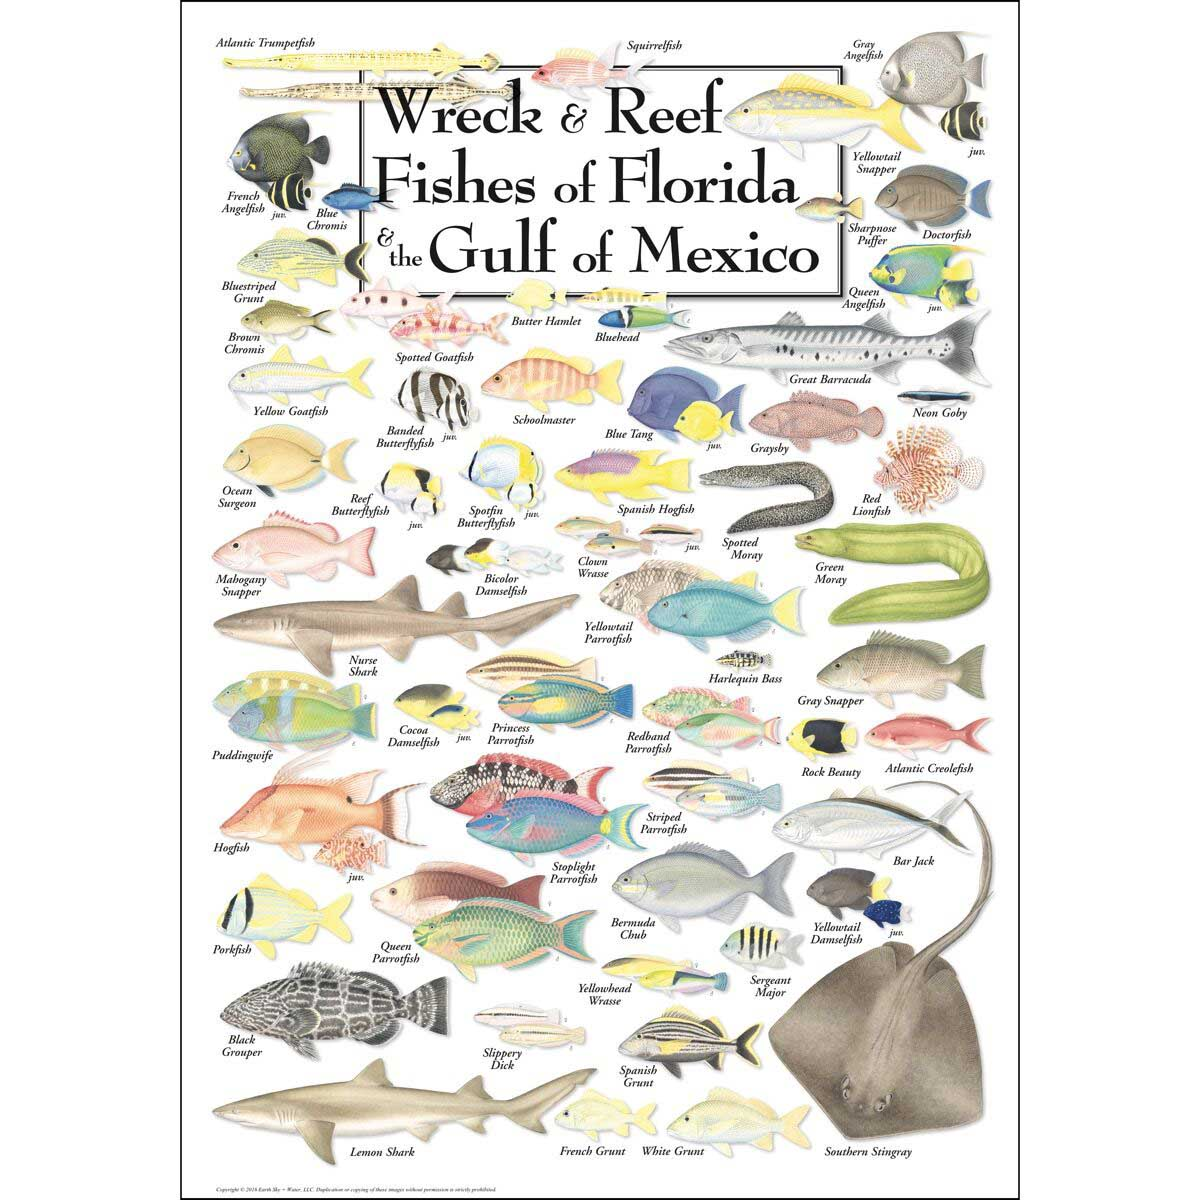 Wreck & Reef Fish of Florida & the Gulf of Mexico Under The Sea Jigsaw Puzzle